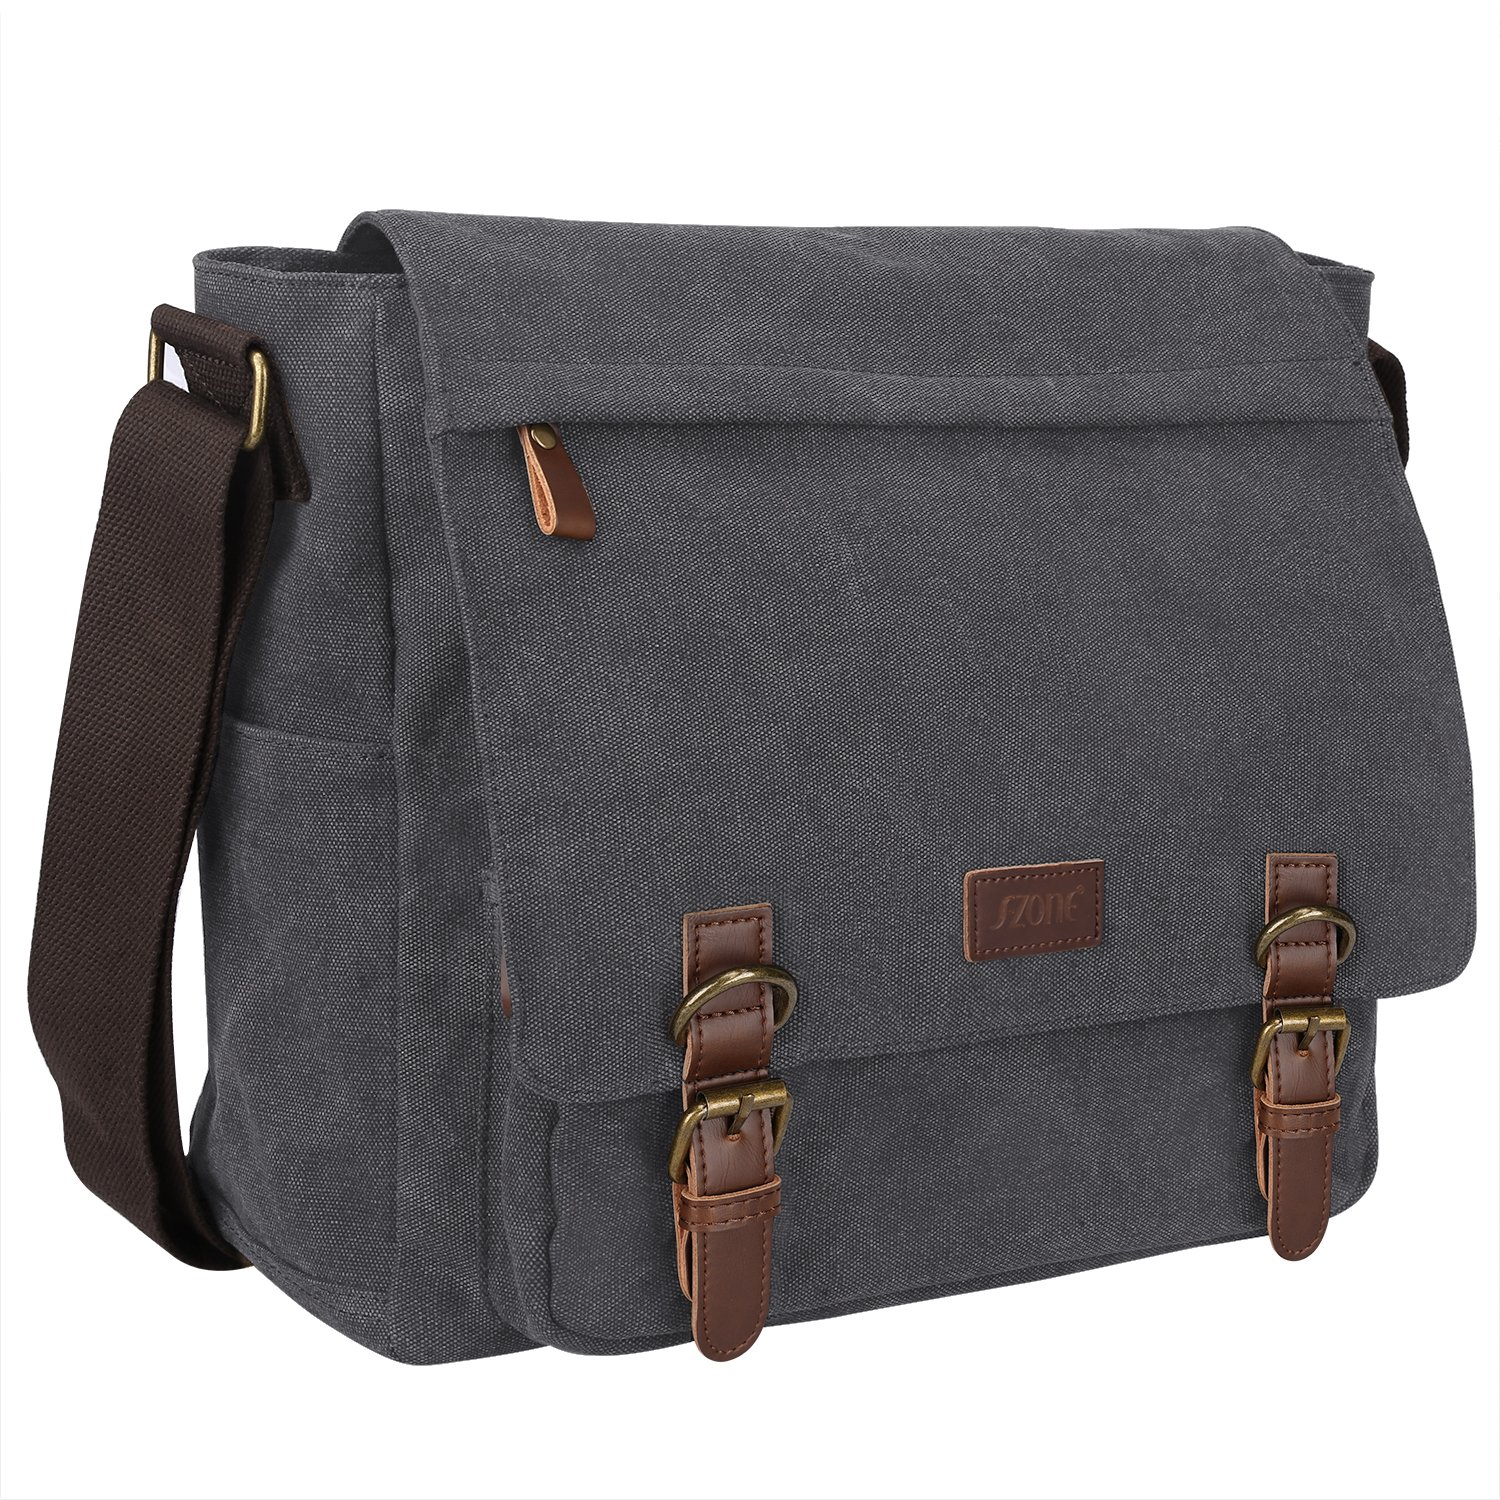 1c7db49614 Amazon.com  S-ZONE Vintage Canvas Laptop Messenger Bag School Shoulder Bag  for 13.3-15inch Laptop Business Briefcase Gray  Pennybuying